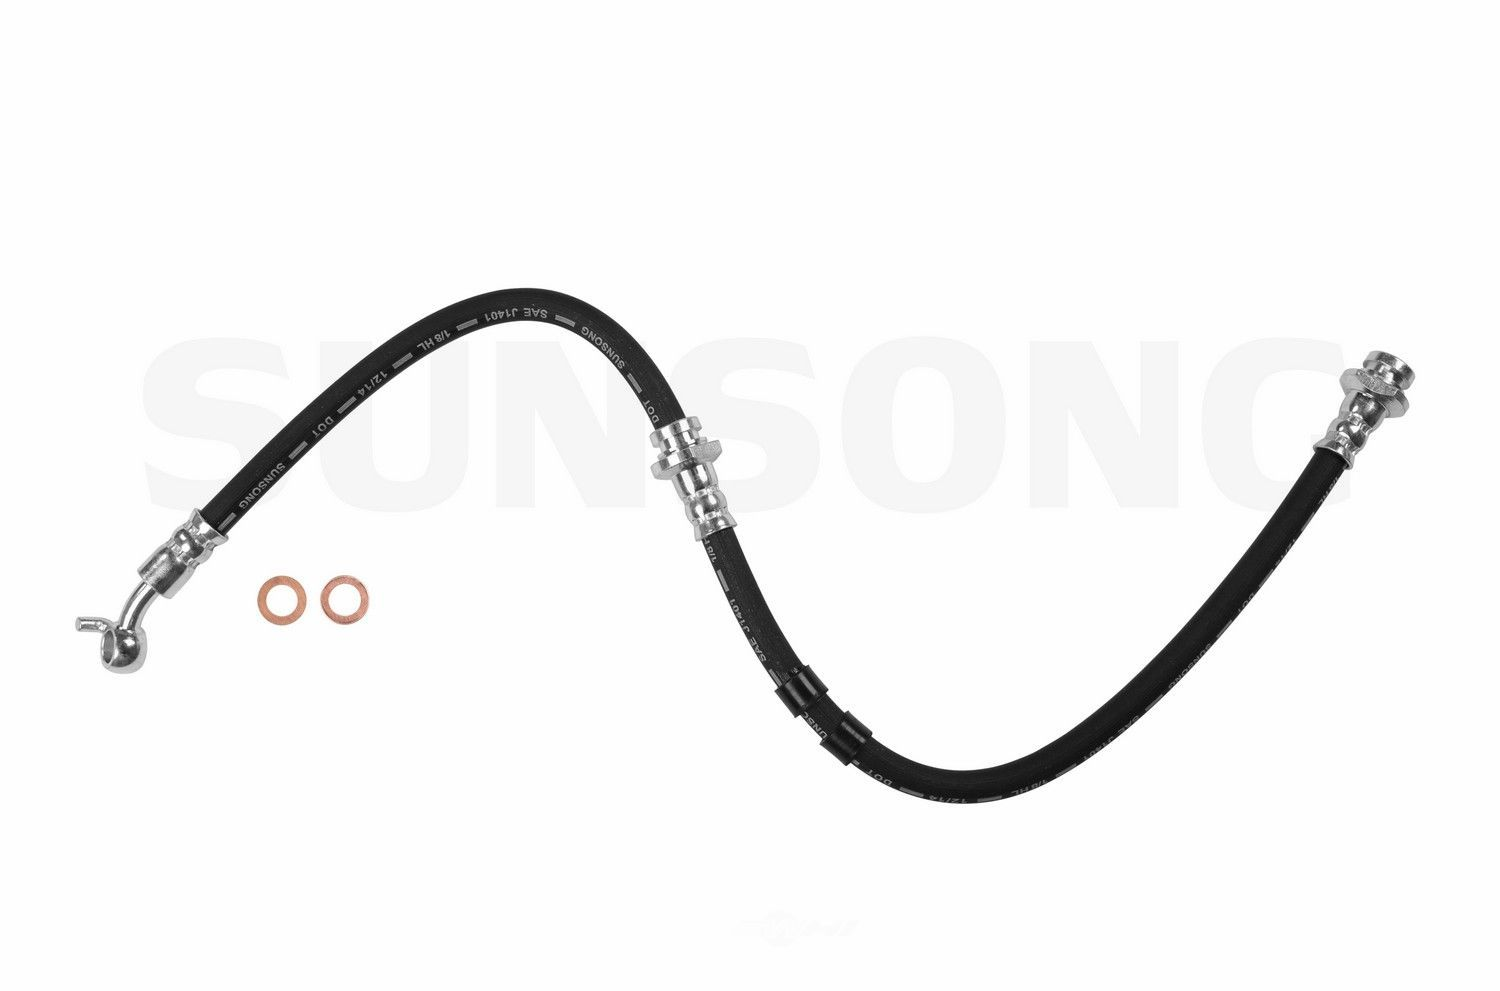 SUNSONG NORTH AMERICA - Brake Hydraulic Hose (Front Left) - SUG 2204873